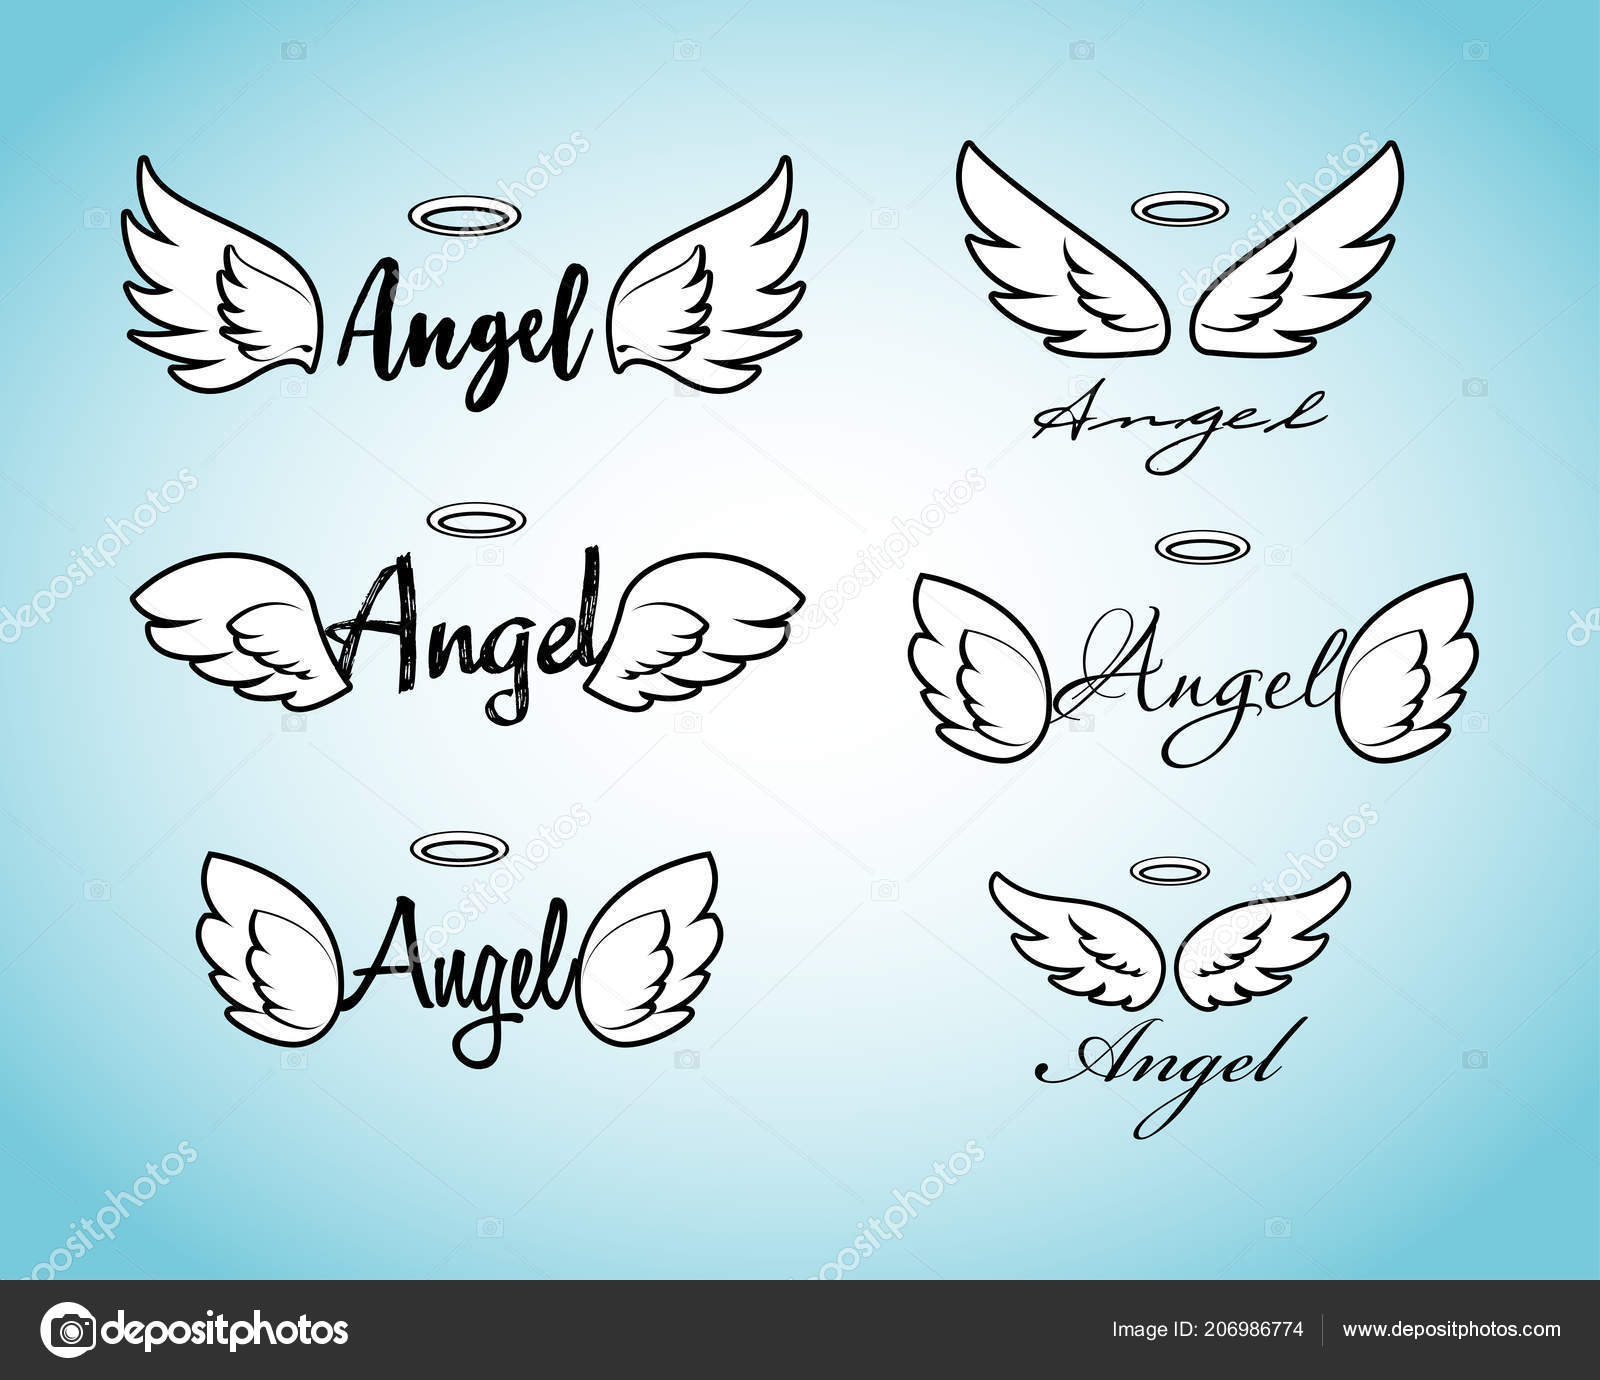 65b5d811b Doodle flying angel wings with halo. Sketch angelic wings. Freedom and  religious tattoo vector design isolated on white background.